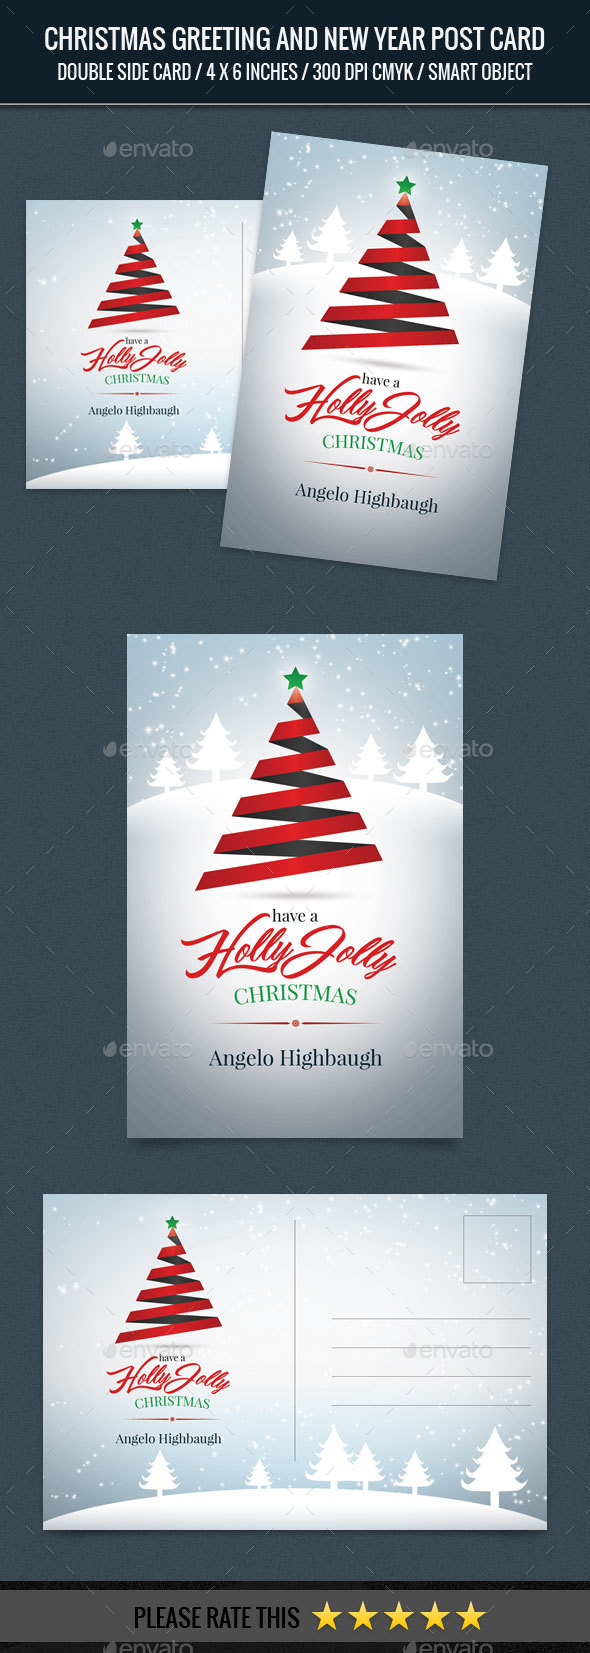 Christmas Greeting and New Year Post Card Template - Cards & Invites Print Templates